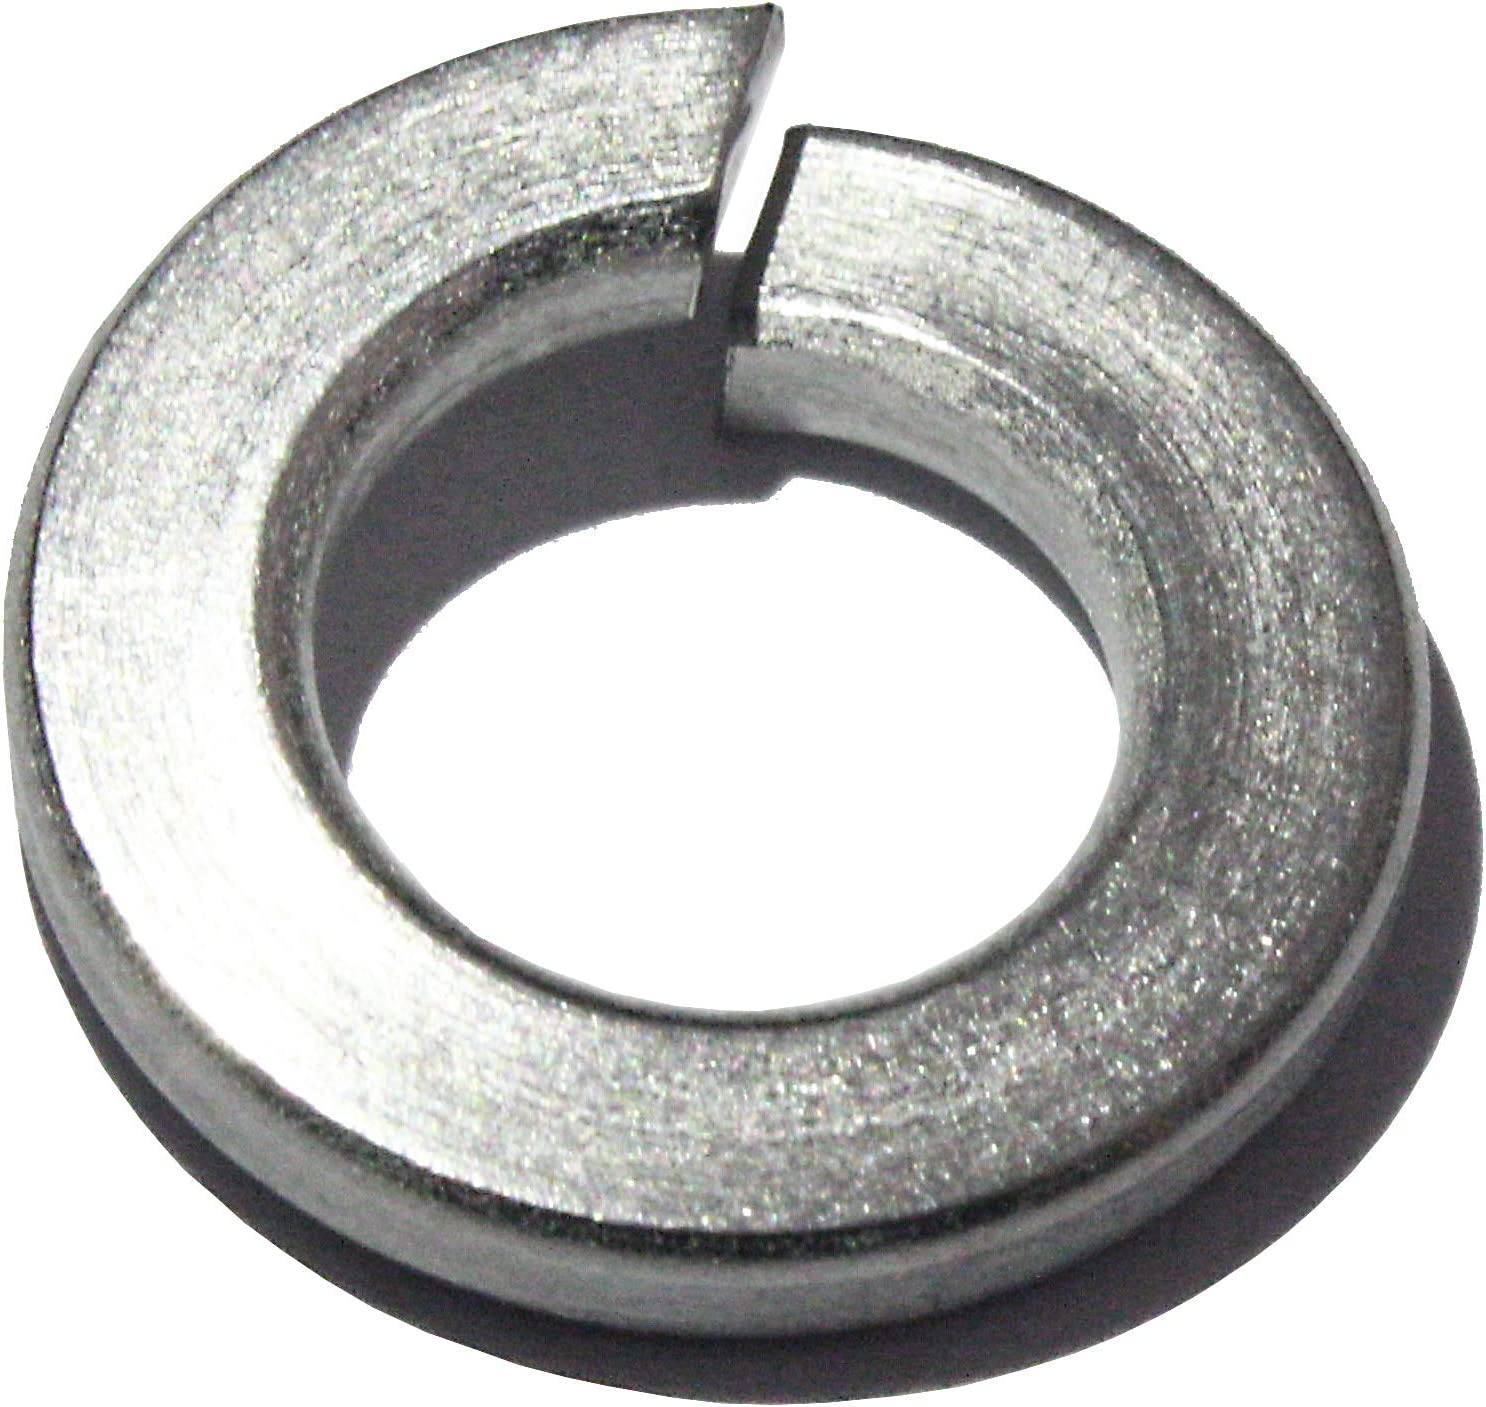 Al sold Special price for a limited time out. Split Lock washers Stainless Steel 18-8 PK50 by Fullerk 8